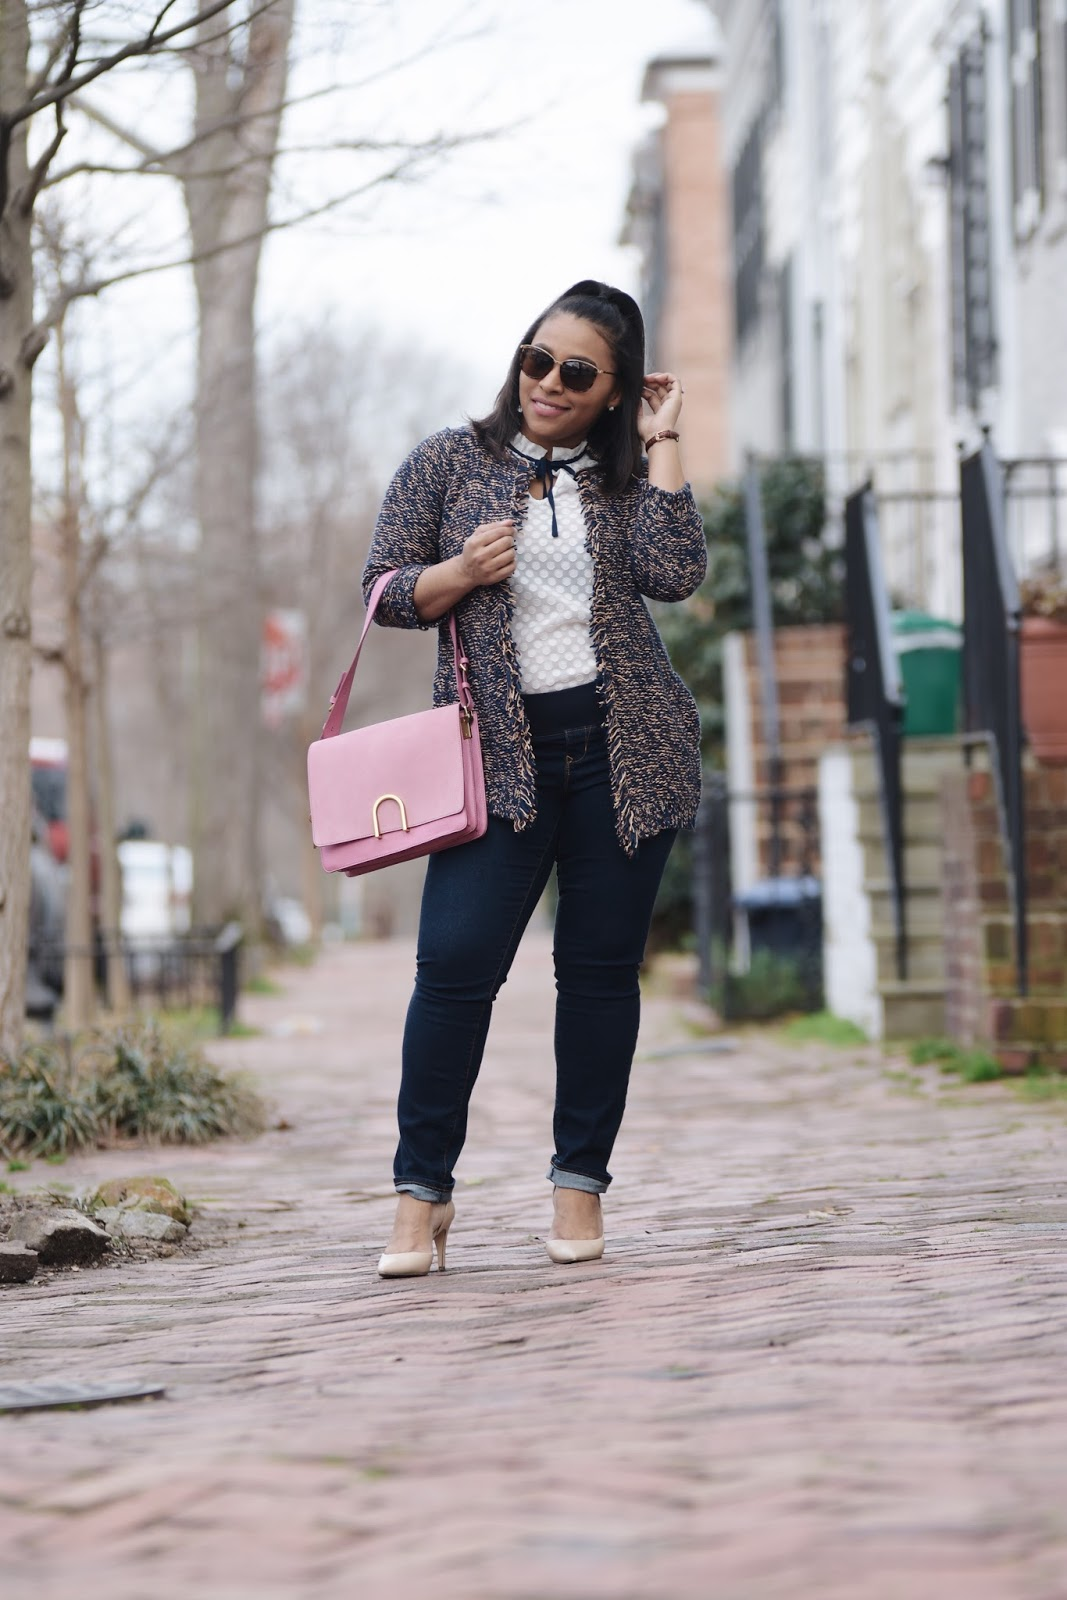 pregnant style, fossil bag, pregnant and stylish, thredup, dc blogger, mom blogger, cherry blossom, DC